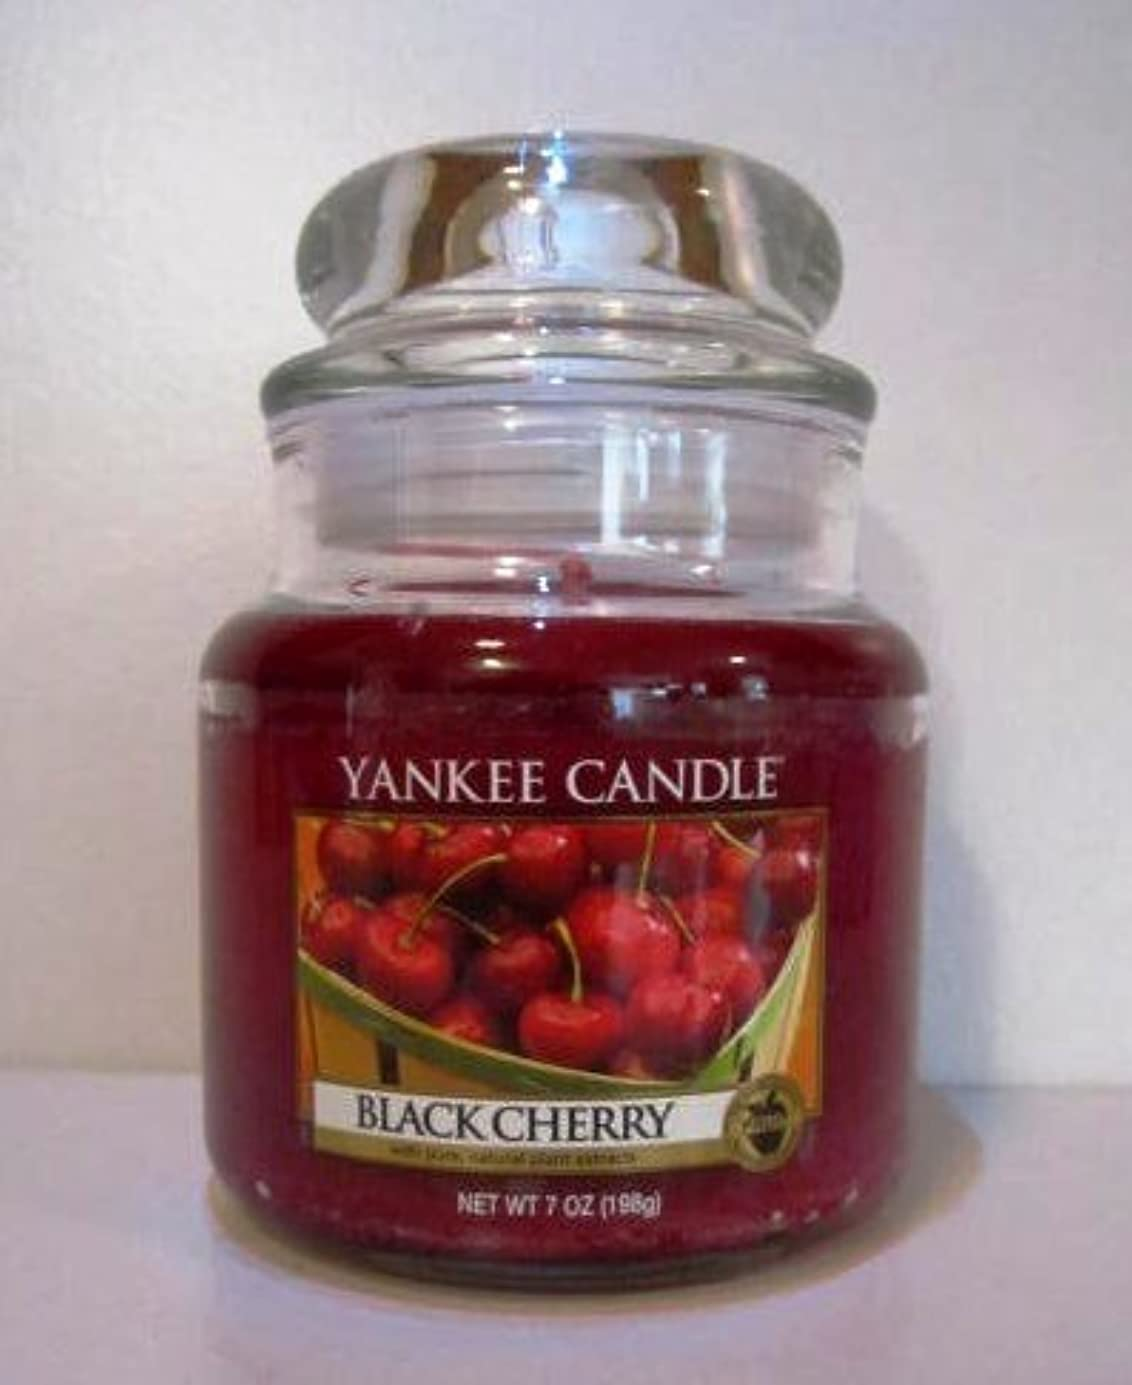 Yankee Candle 7 oz Housewarmer Jar Candle BLACK CHERRY by Yankee Candle [並行輸入品]